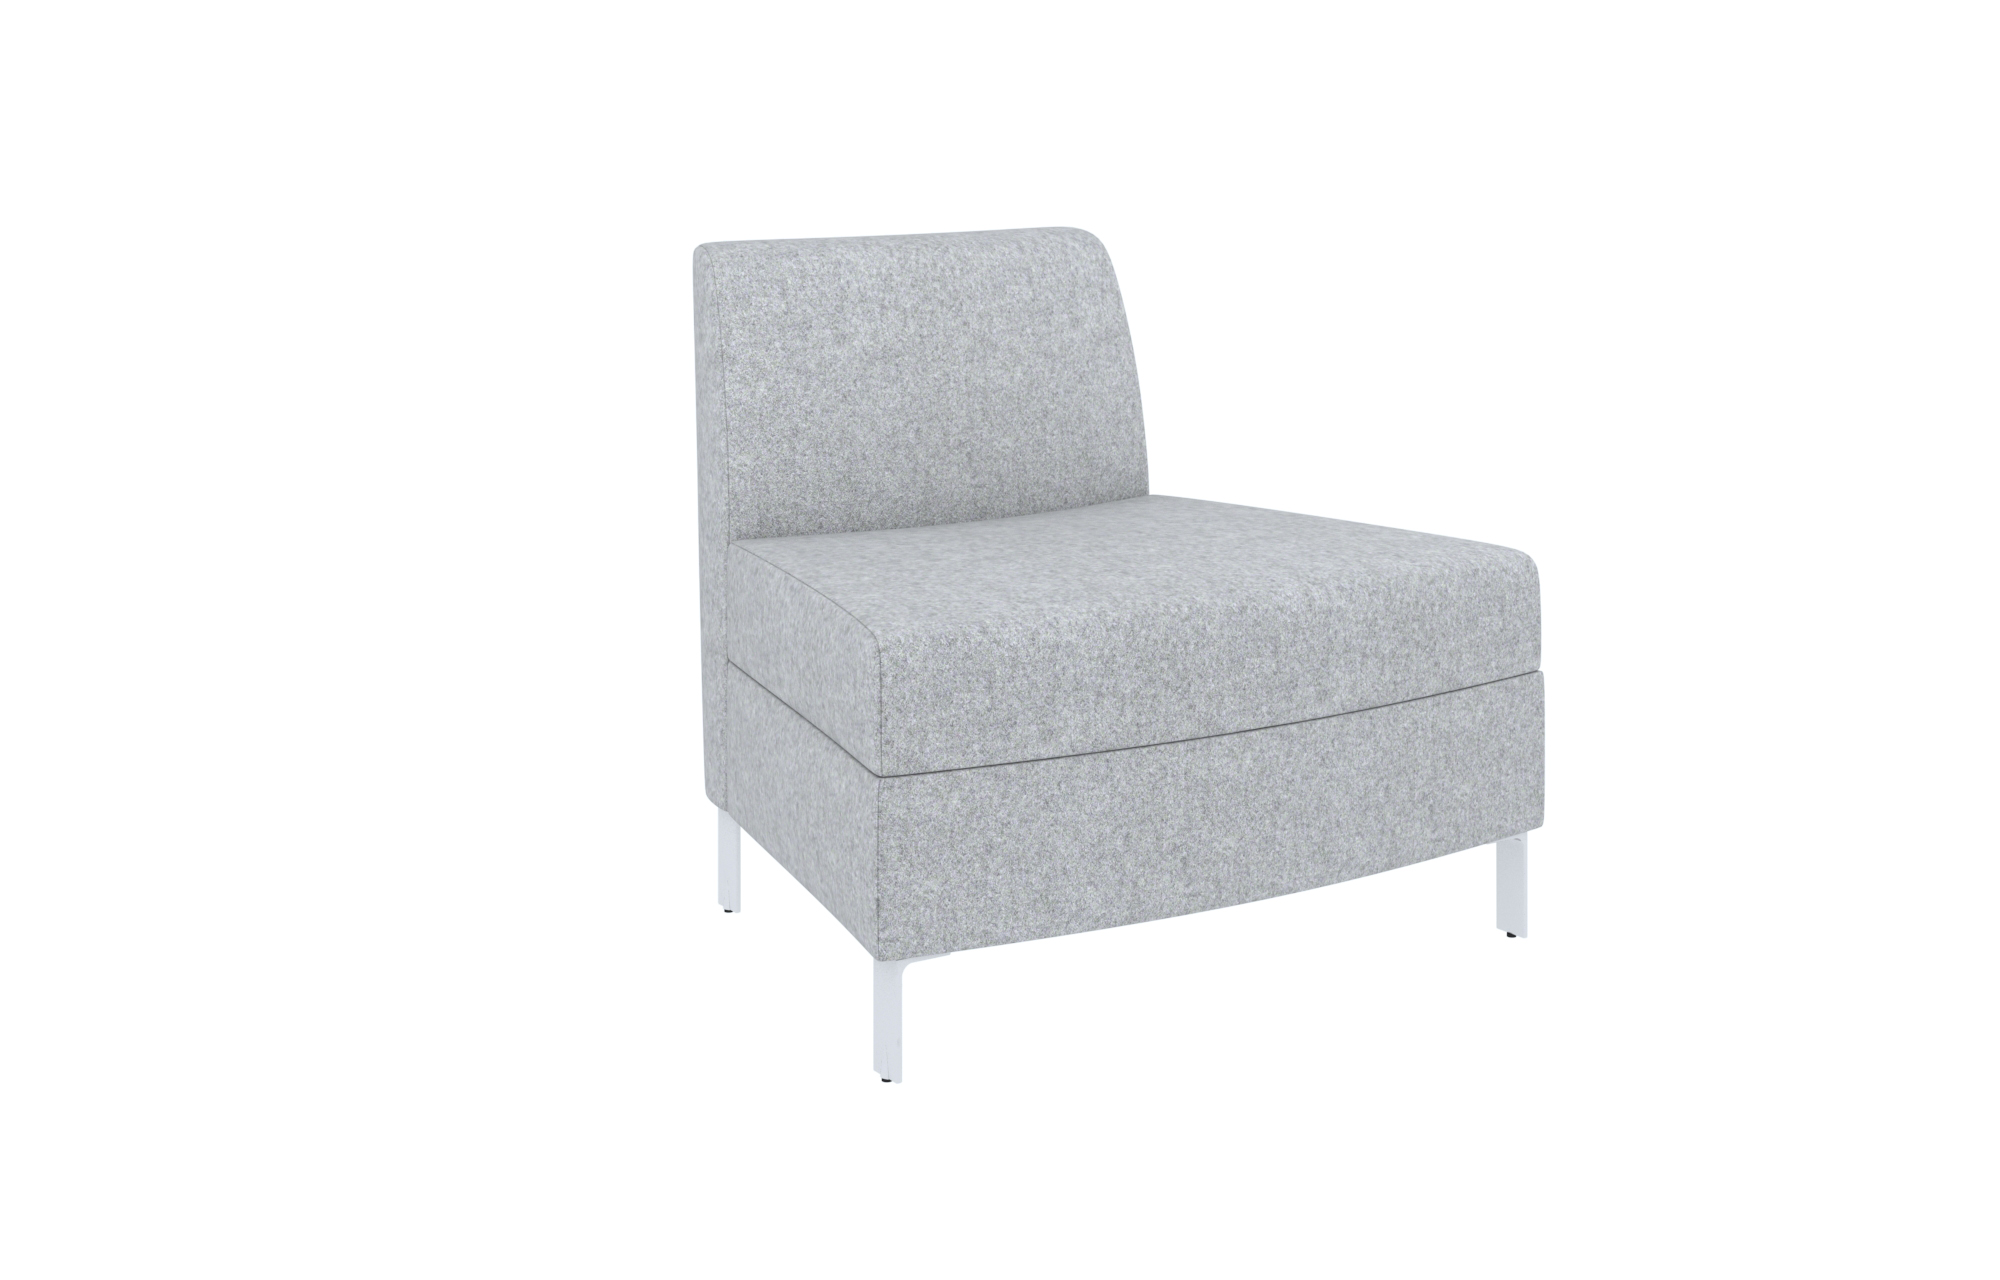 Hickory Contract Gemini Modular Lounge GE-212